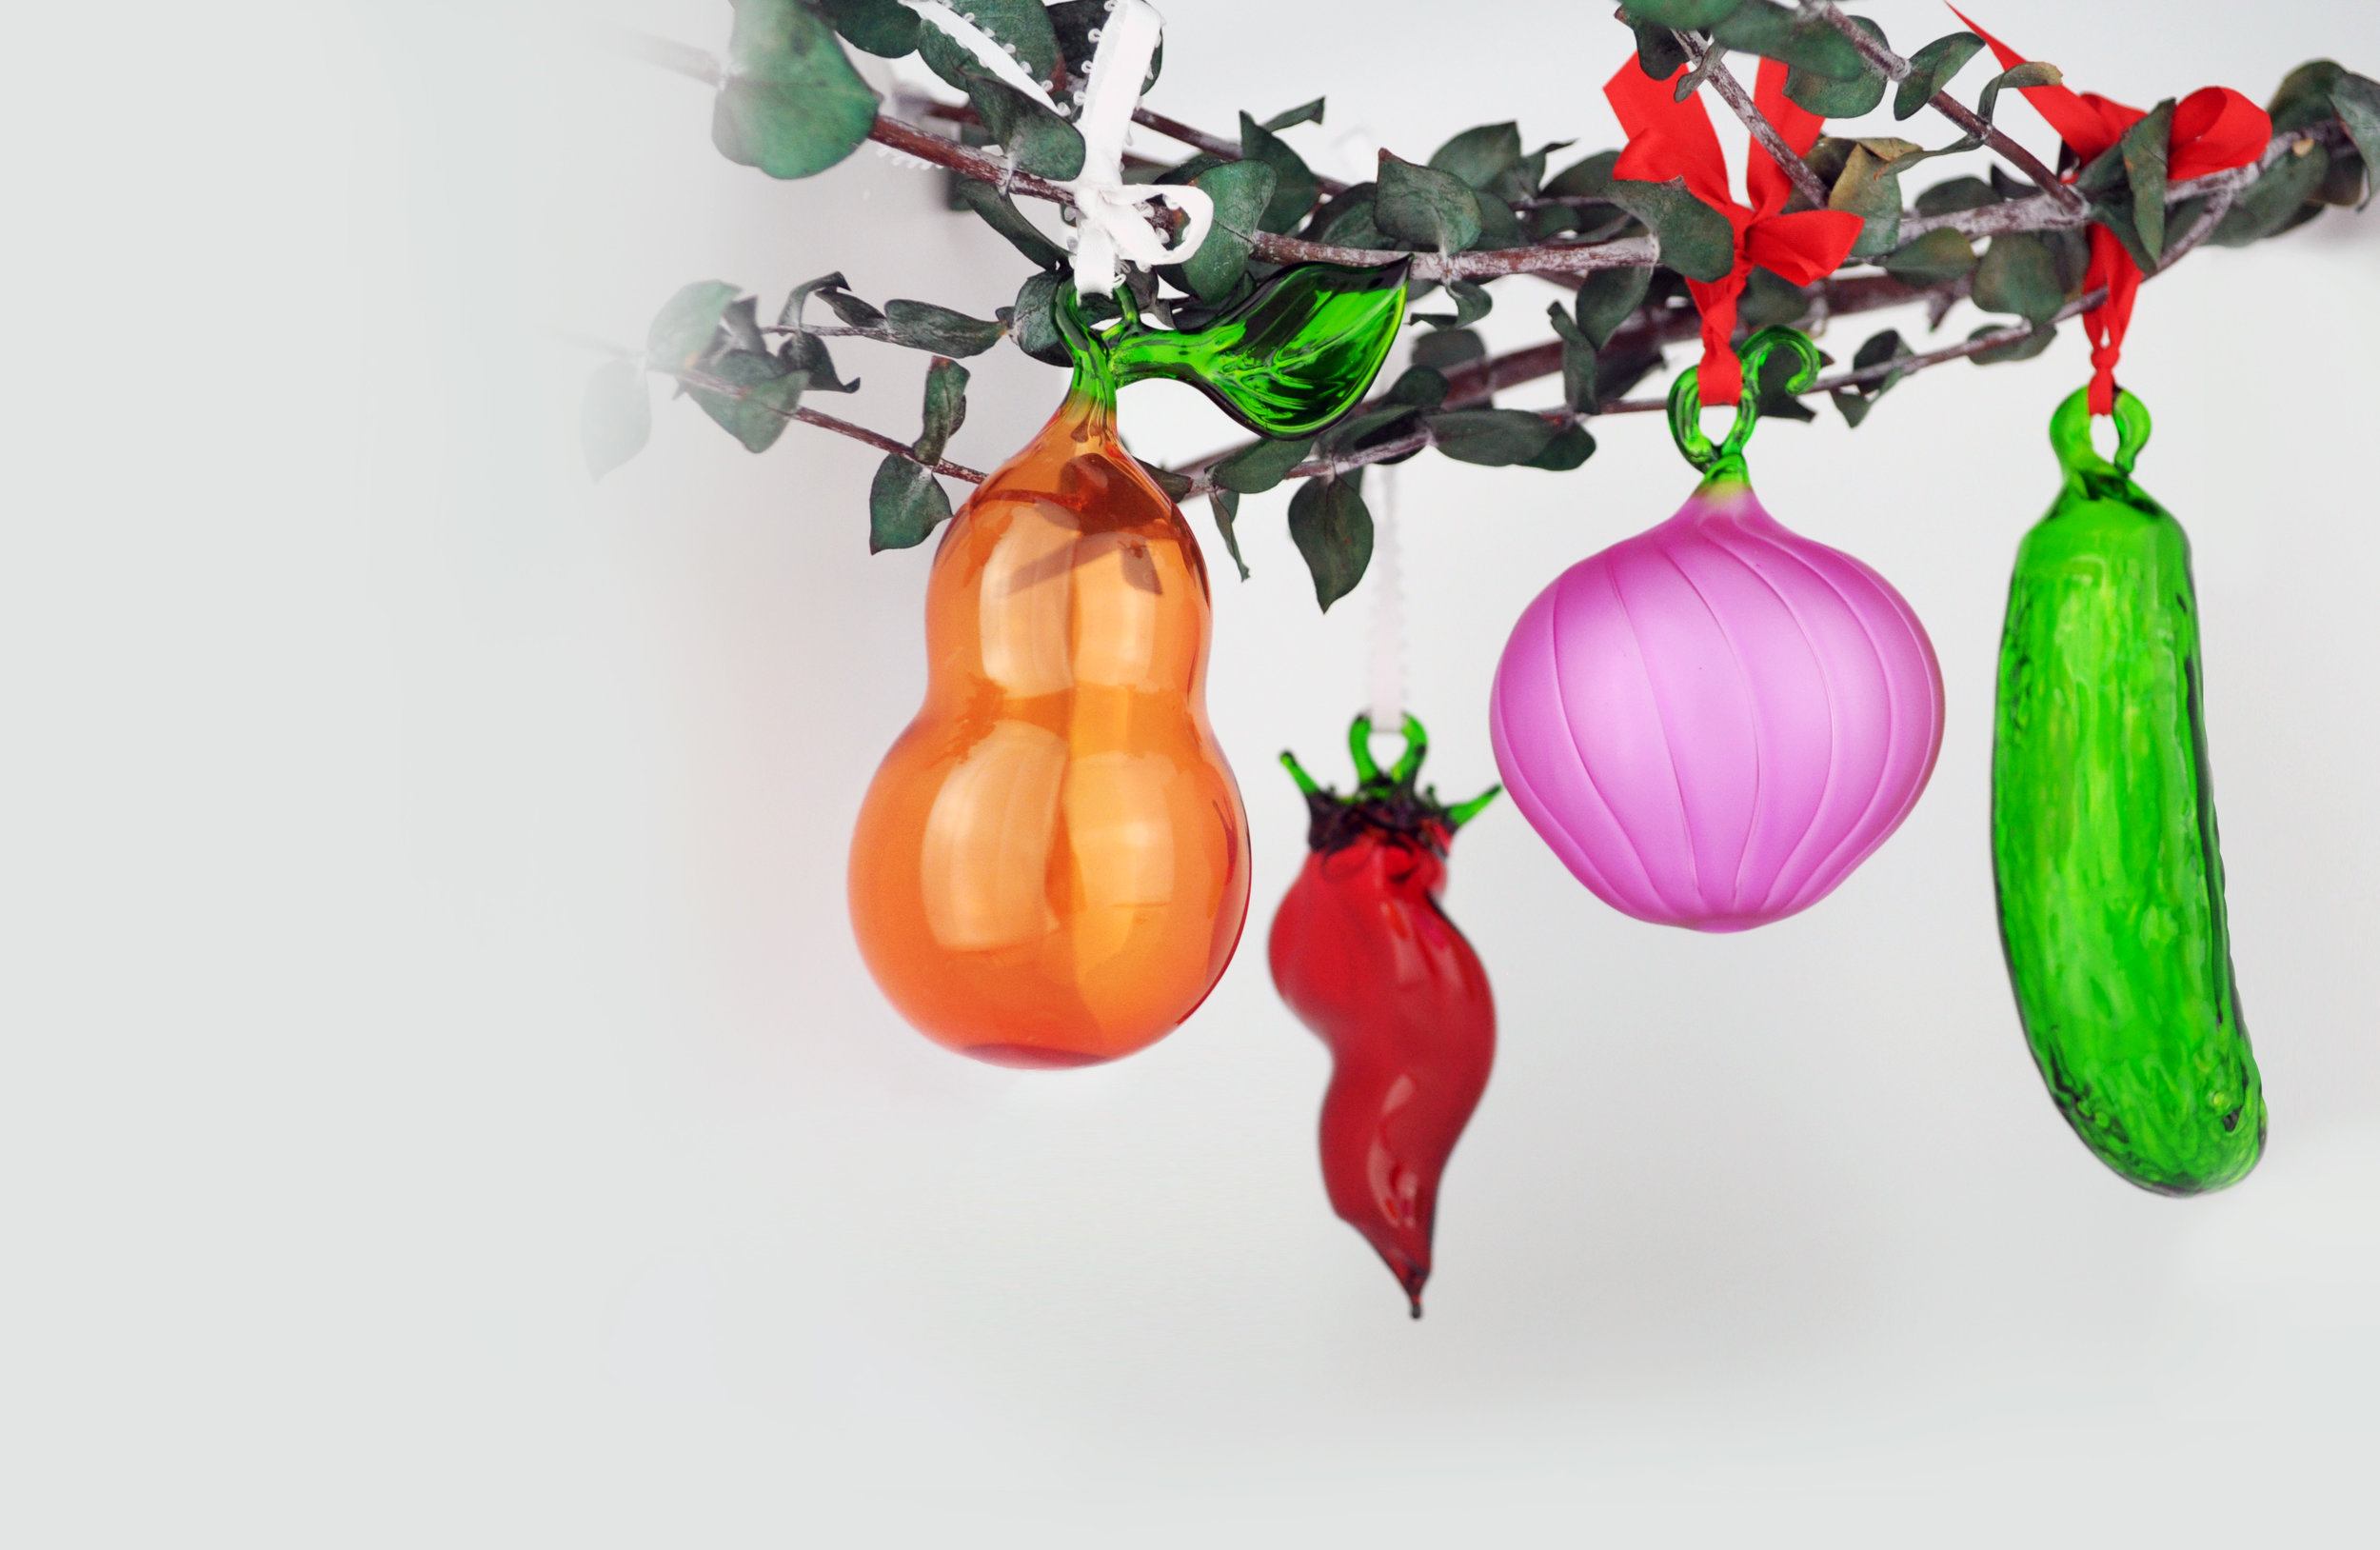 Contemporary Craft - Visit the shop at Contemporary Craft to find a variety of handcrafted items, like these glass vegetable ornaments.